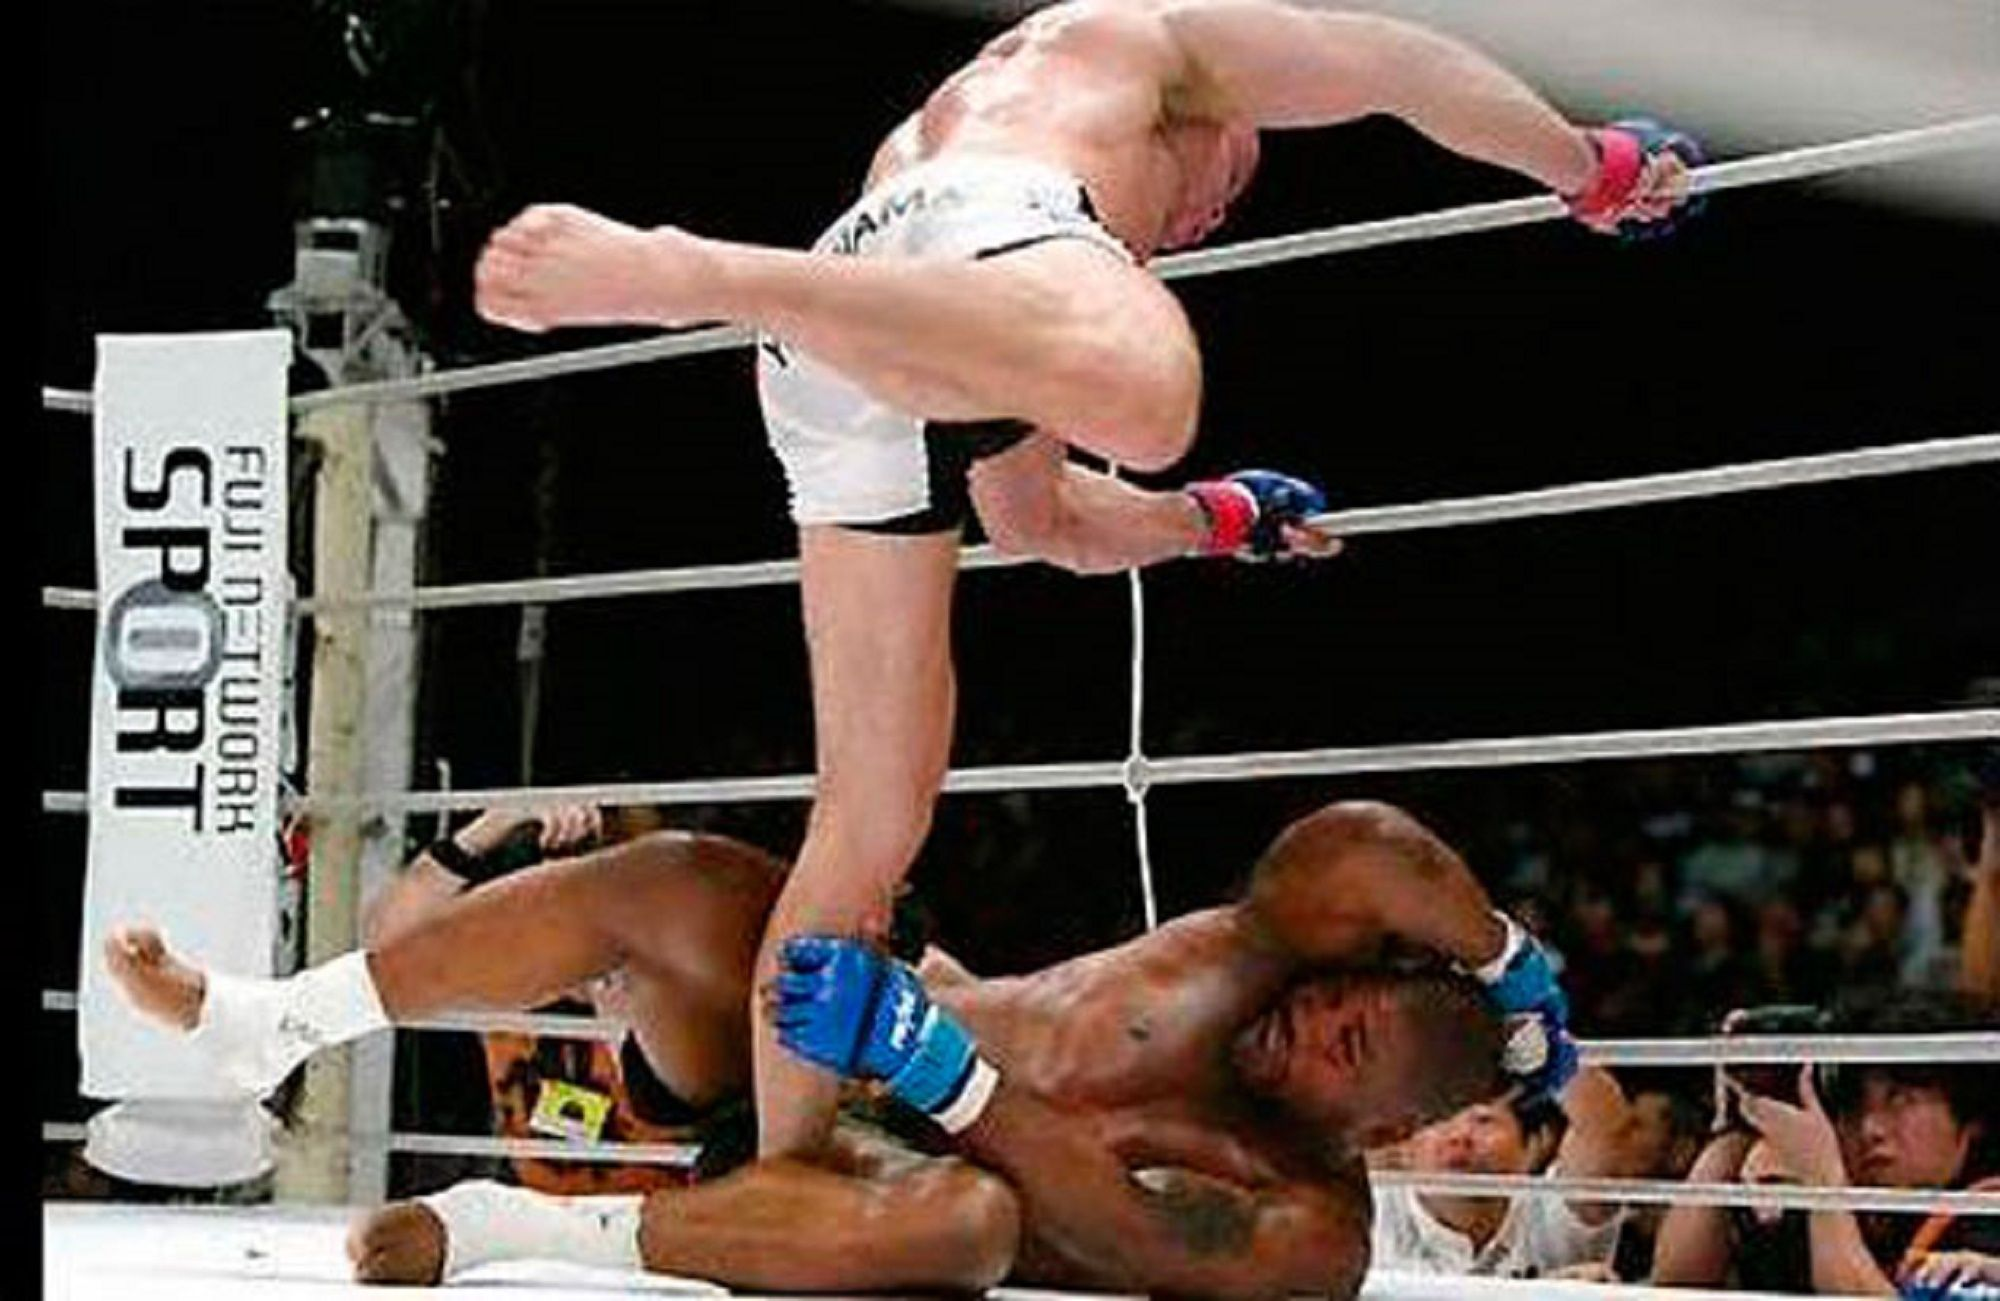 http://static1.thesportsterimages.com/cdn/864/562/90/cw/wp-content/uploads/2014/10/Wanderlei-Silva-and-Quinton.jpg